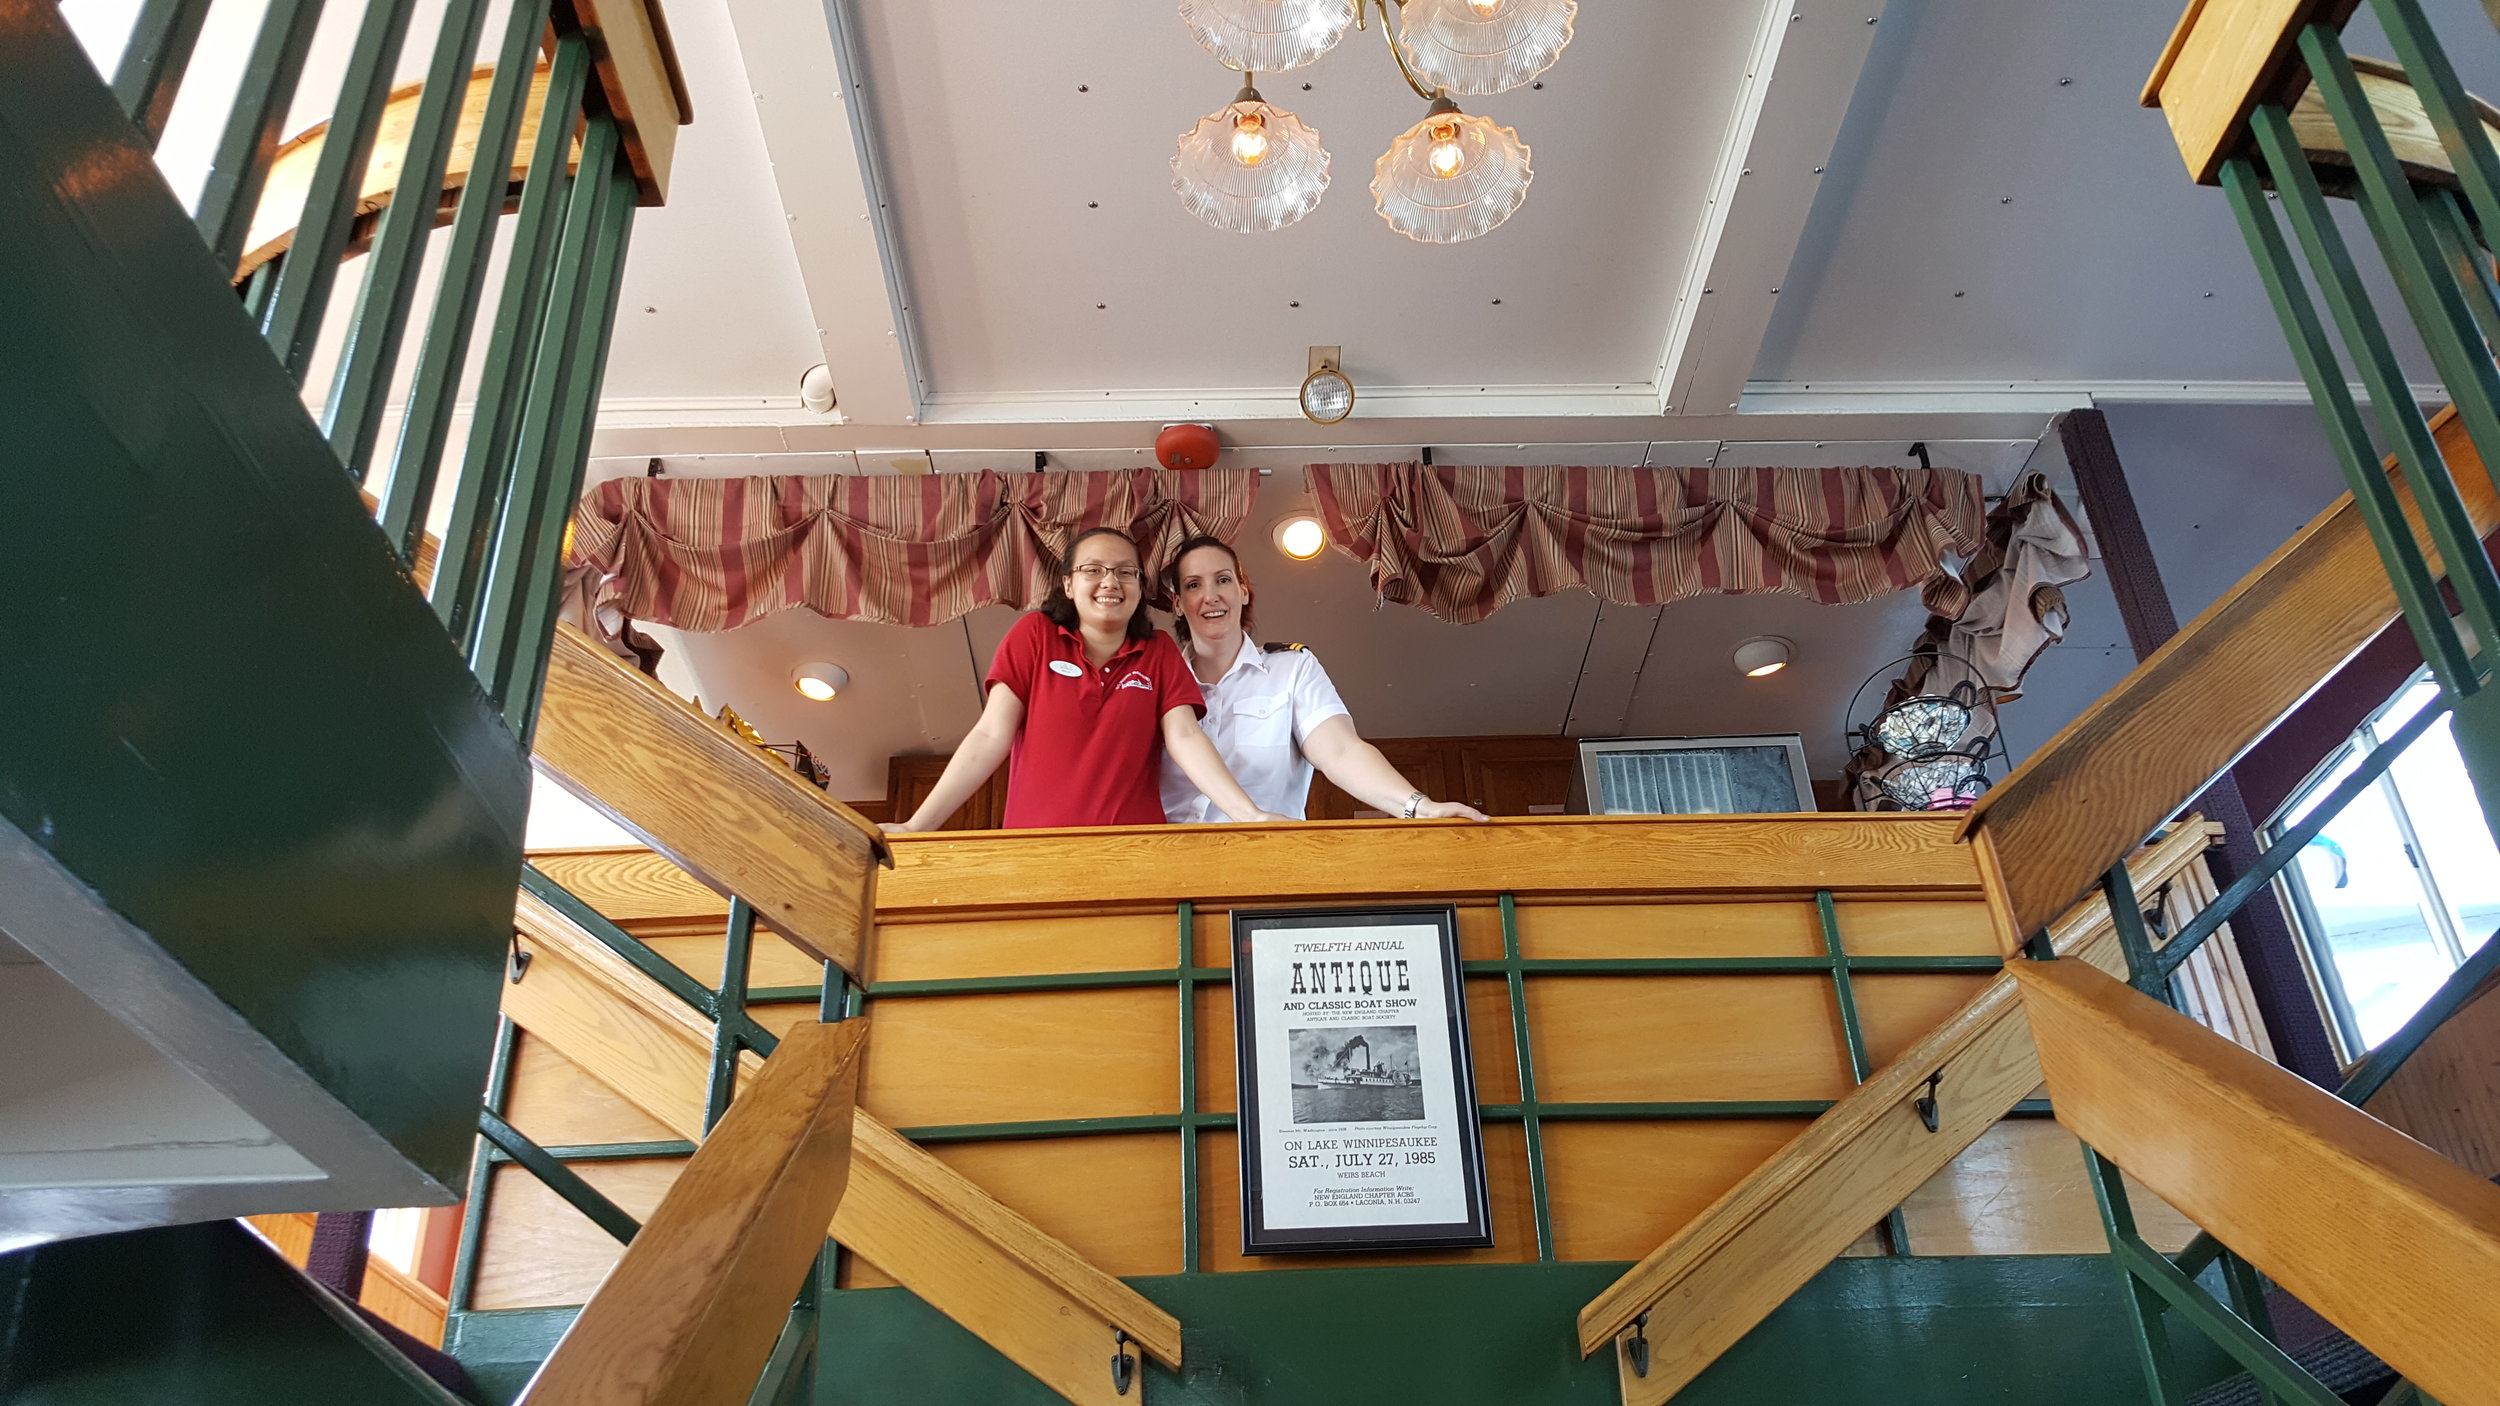 The friendly staff of the M/S Mount Washington make passengers feel special and cared for.